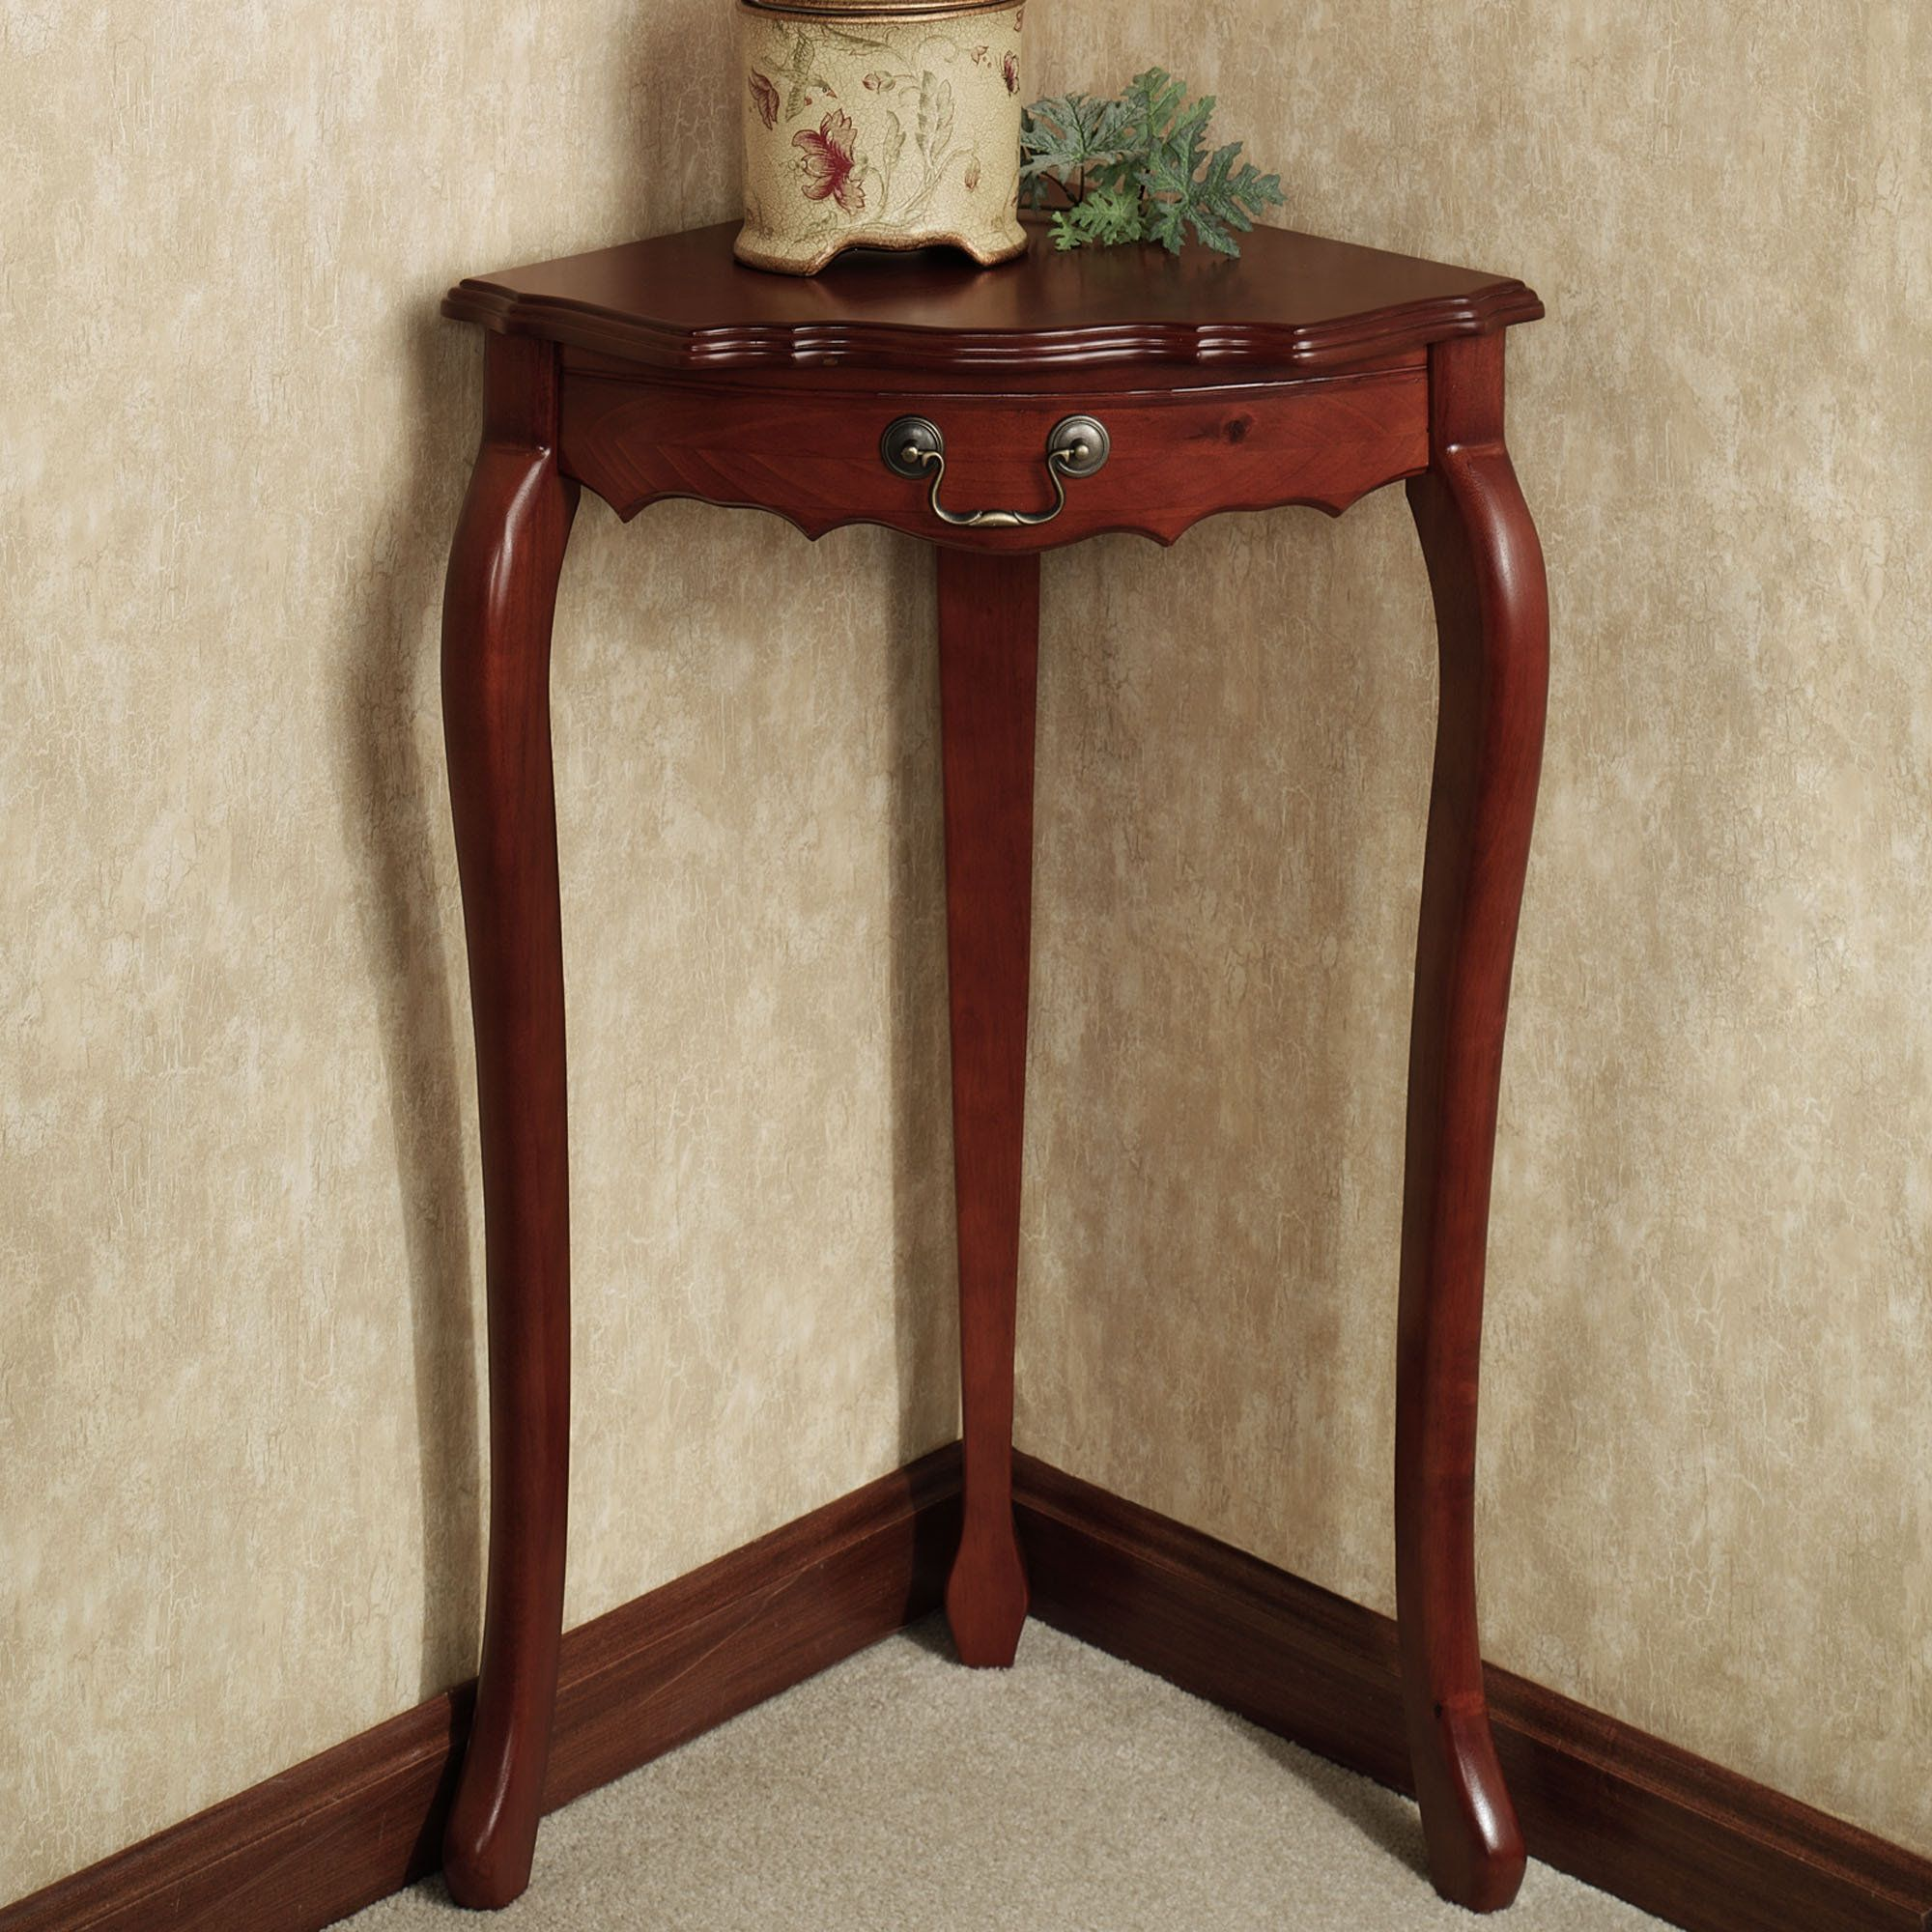 Various Options for Corner Accent Table Design in 2020 ...